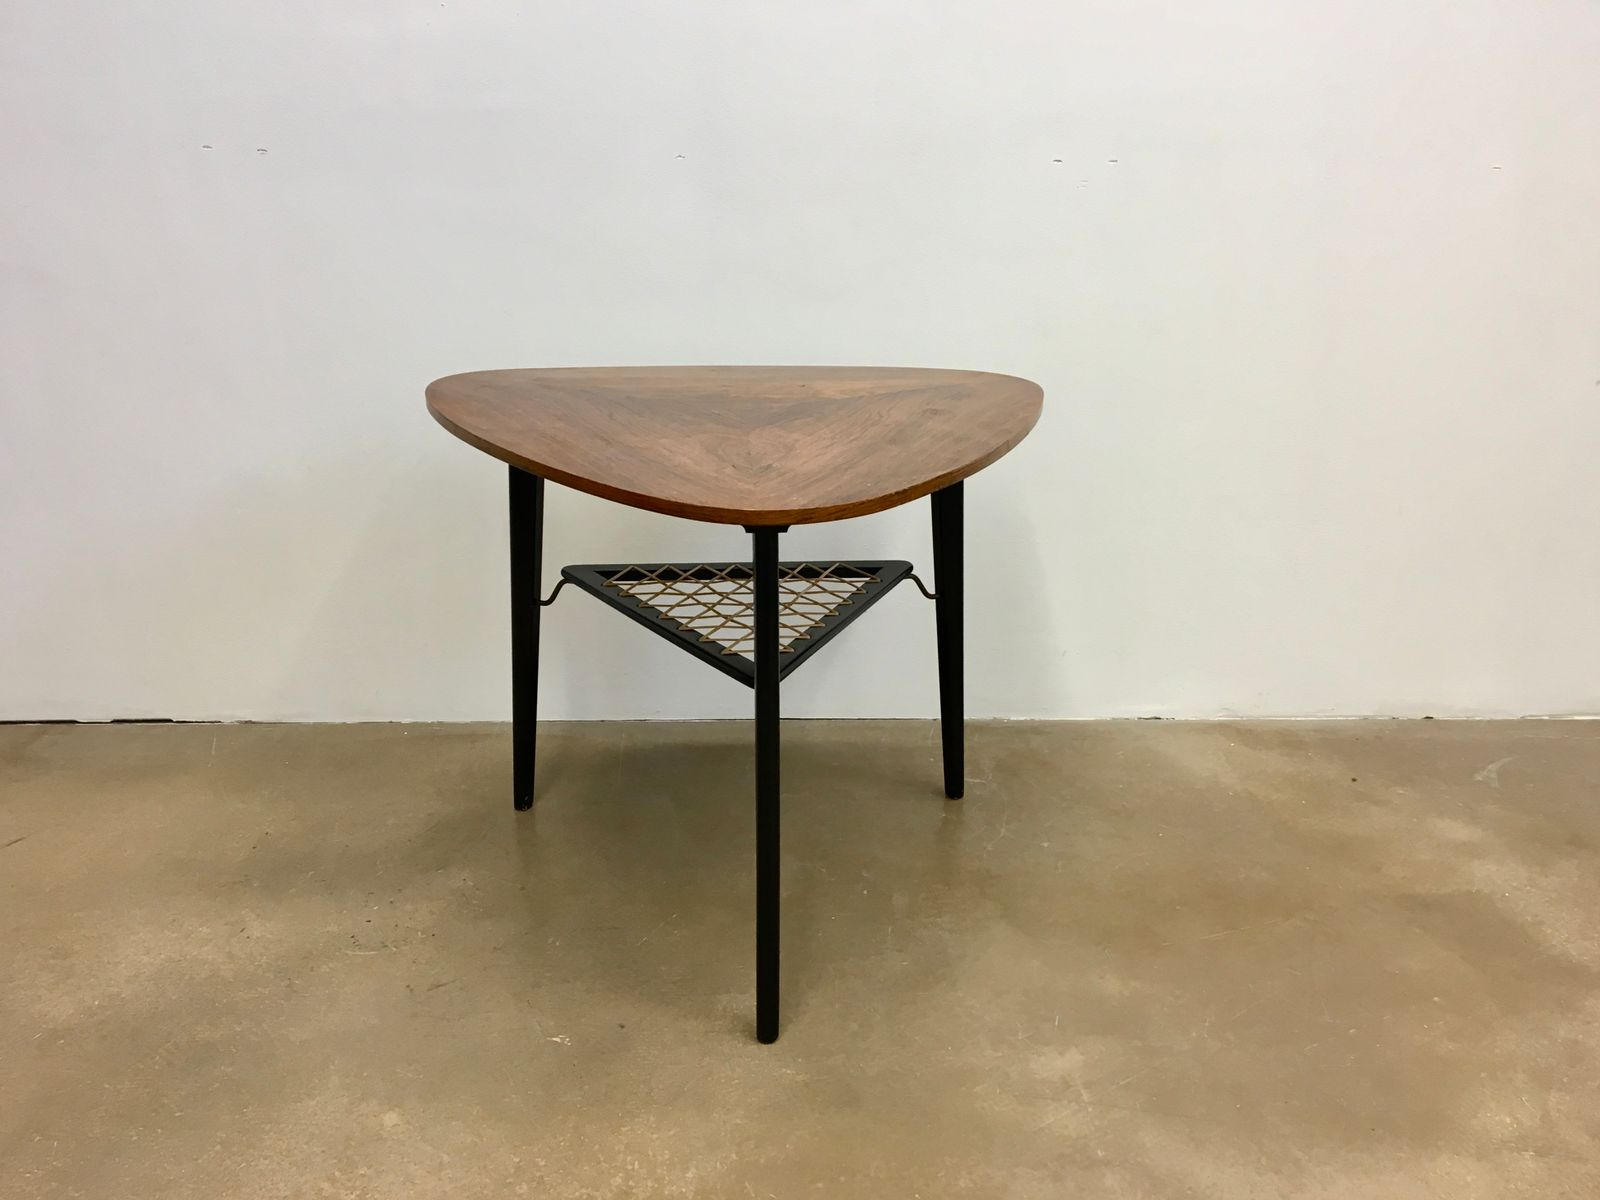 MidCentury Danish Triangular Rosewood Coffee Table With Rack For - Mid century triangle coffee table